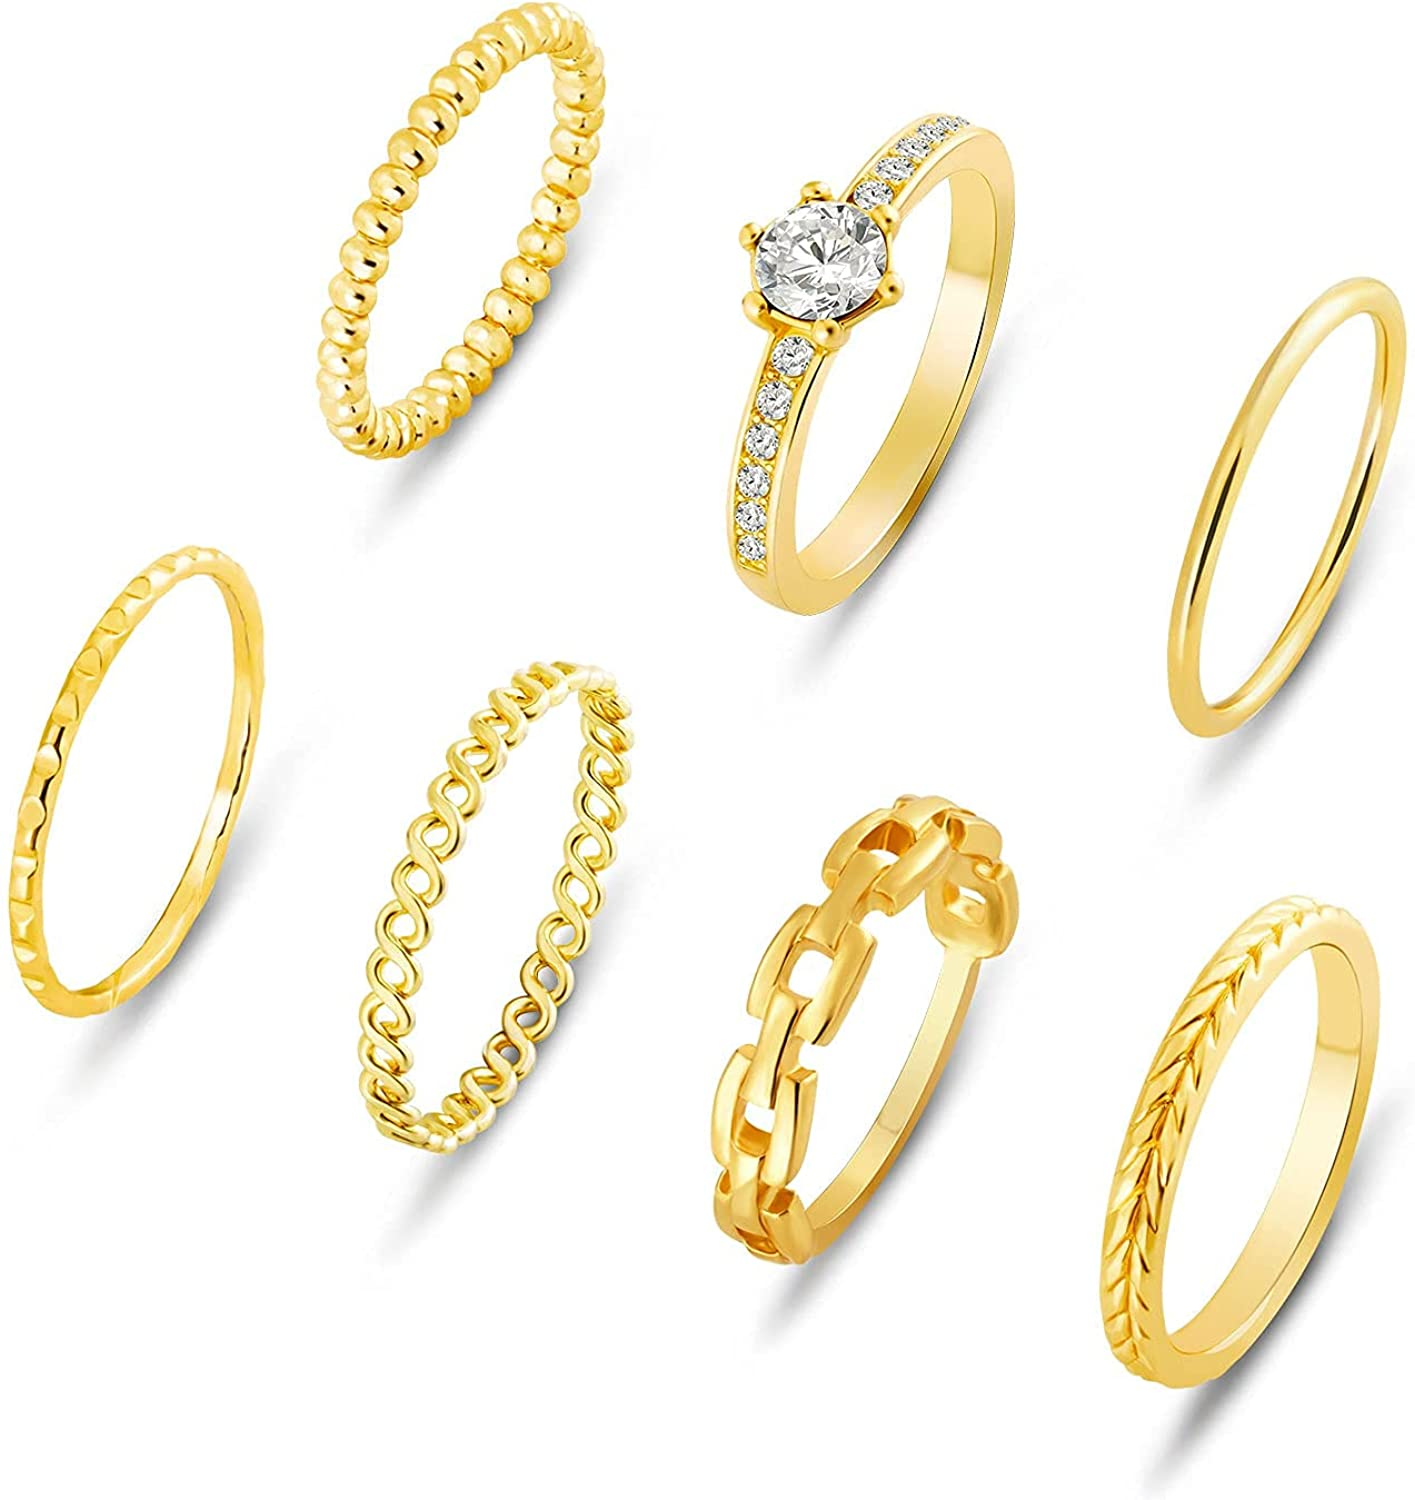 Stackable Rings Set: 7pcs 14K Gold Simple Fashion Multiple Rings Kit Dainty CZ Gemstone Jewelry Pack for Women Teen Girls